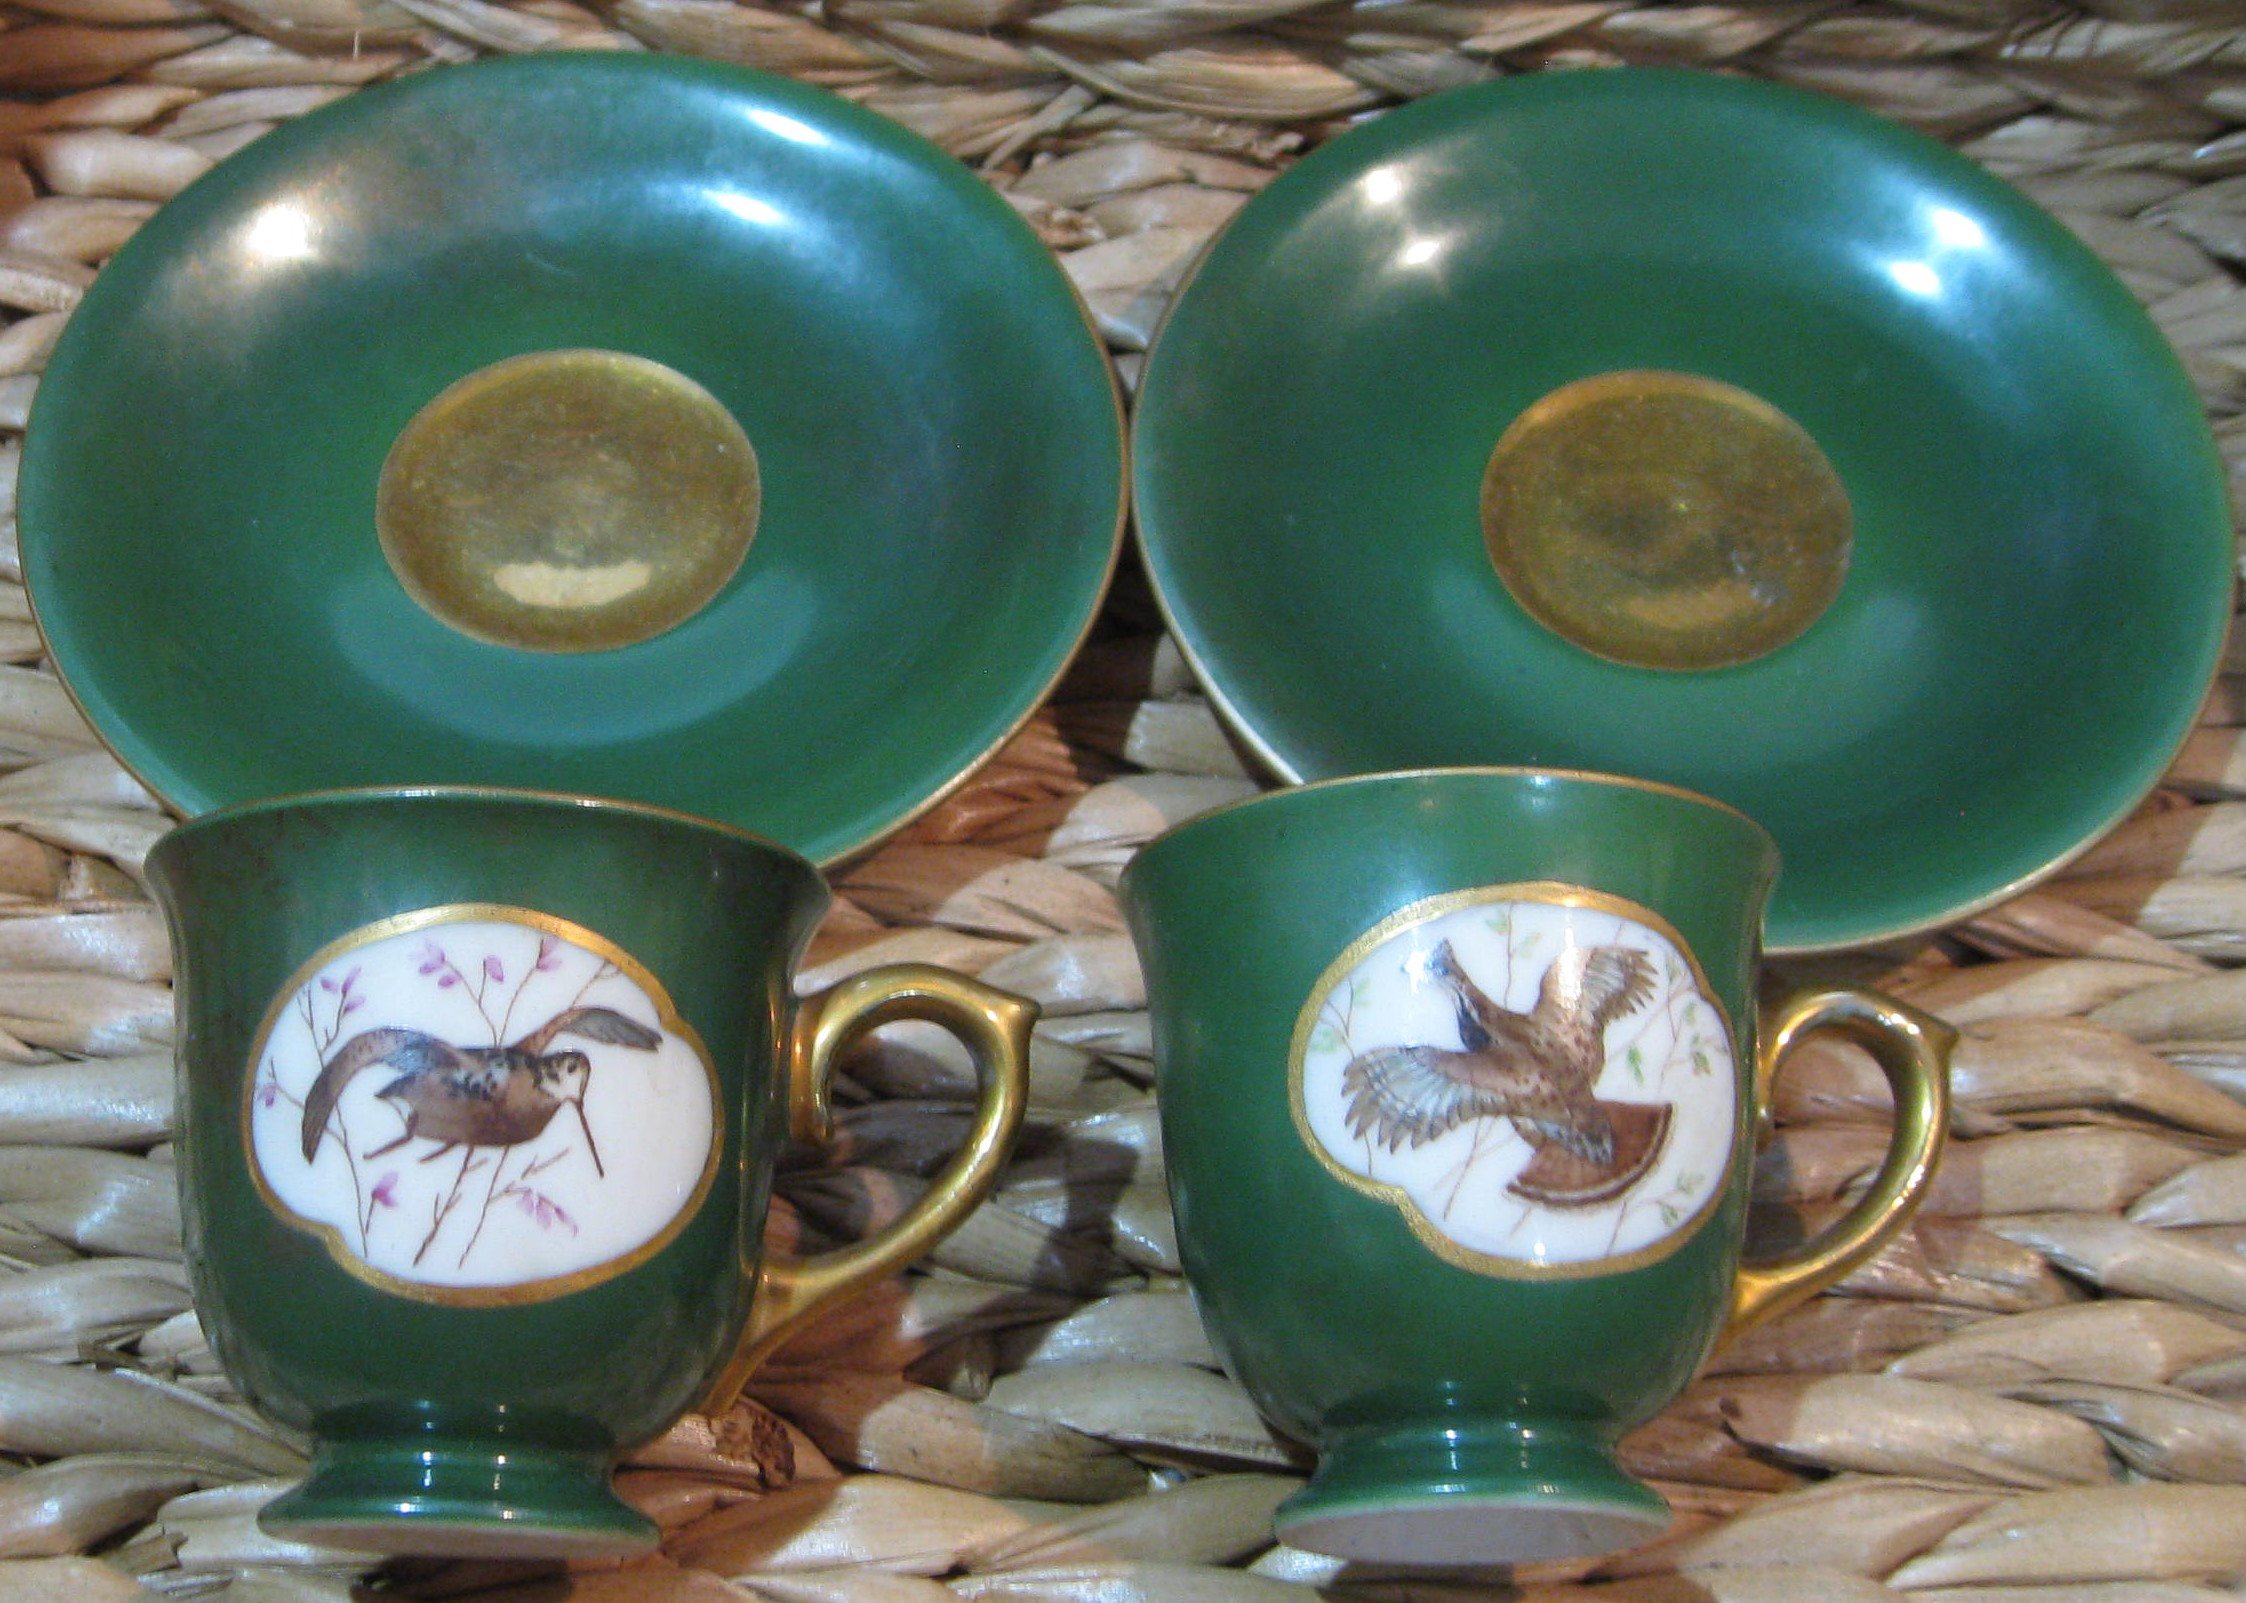 Image for VINTAGE FINE PORCELAIN DEMITASSE GROUSE AND WOODCOCK COFFEE CUPS AND SAUCERS - SET OF 2 -